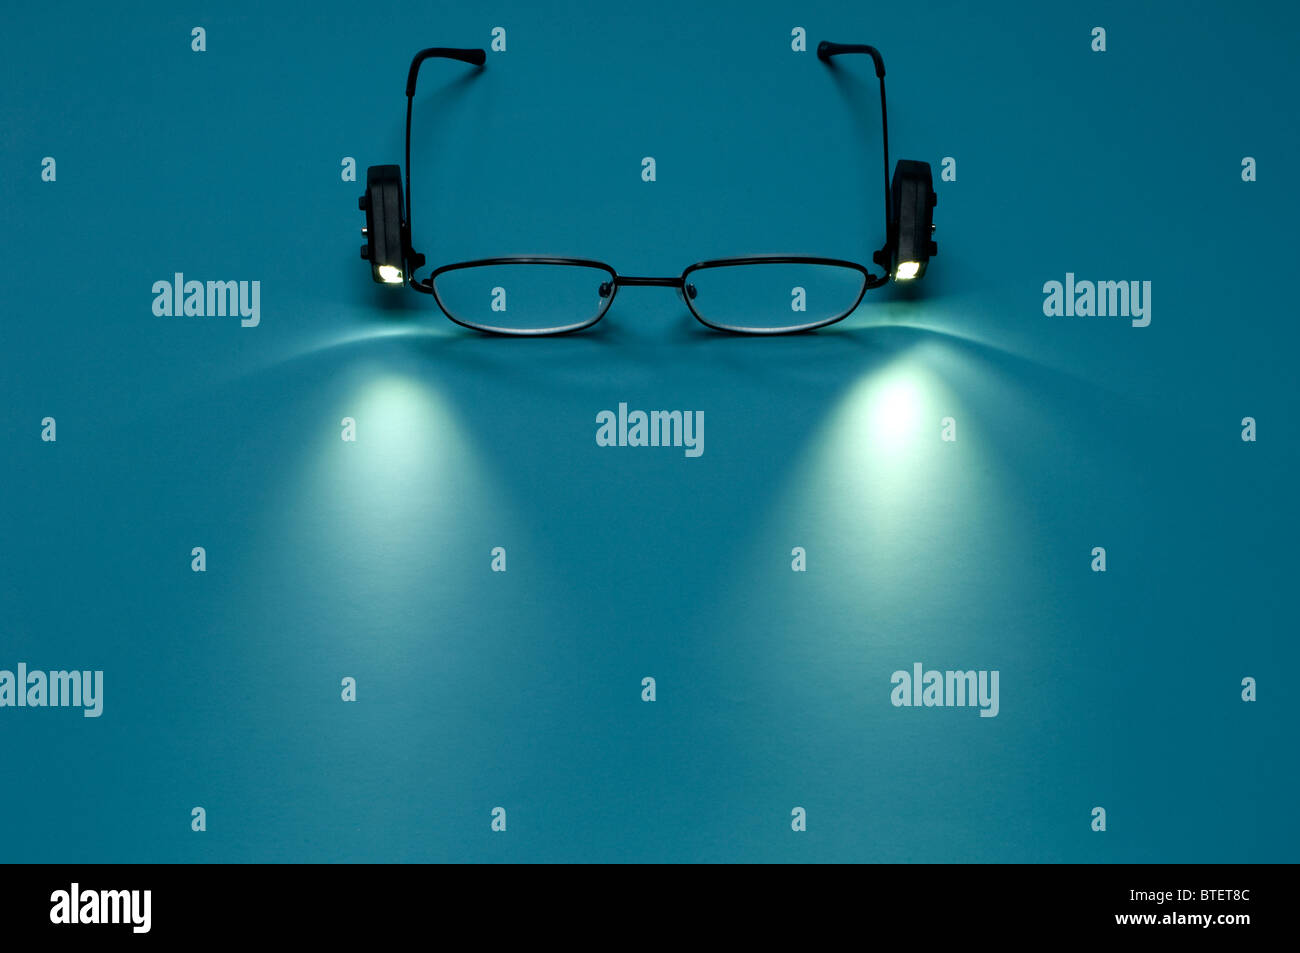 Reading eyeglasses with small lights attached to the frames. Light is projected on the surface. - Stock Image